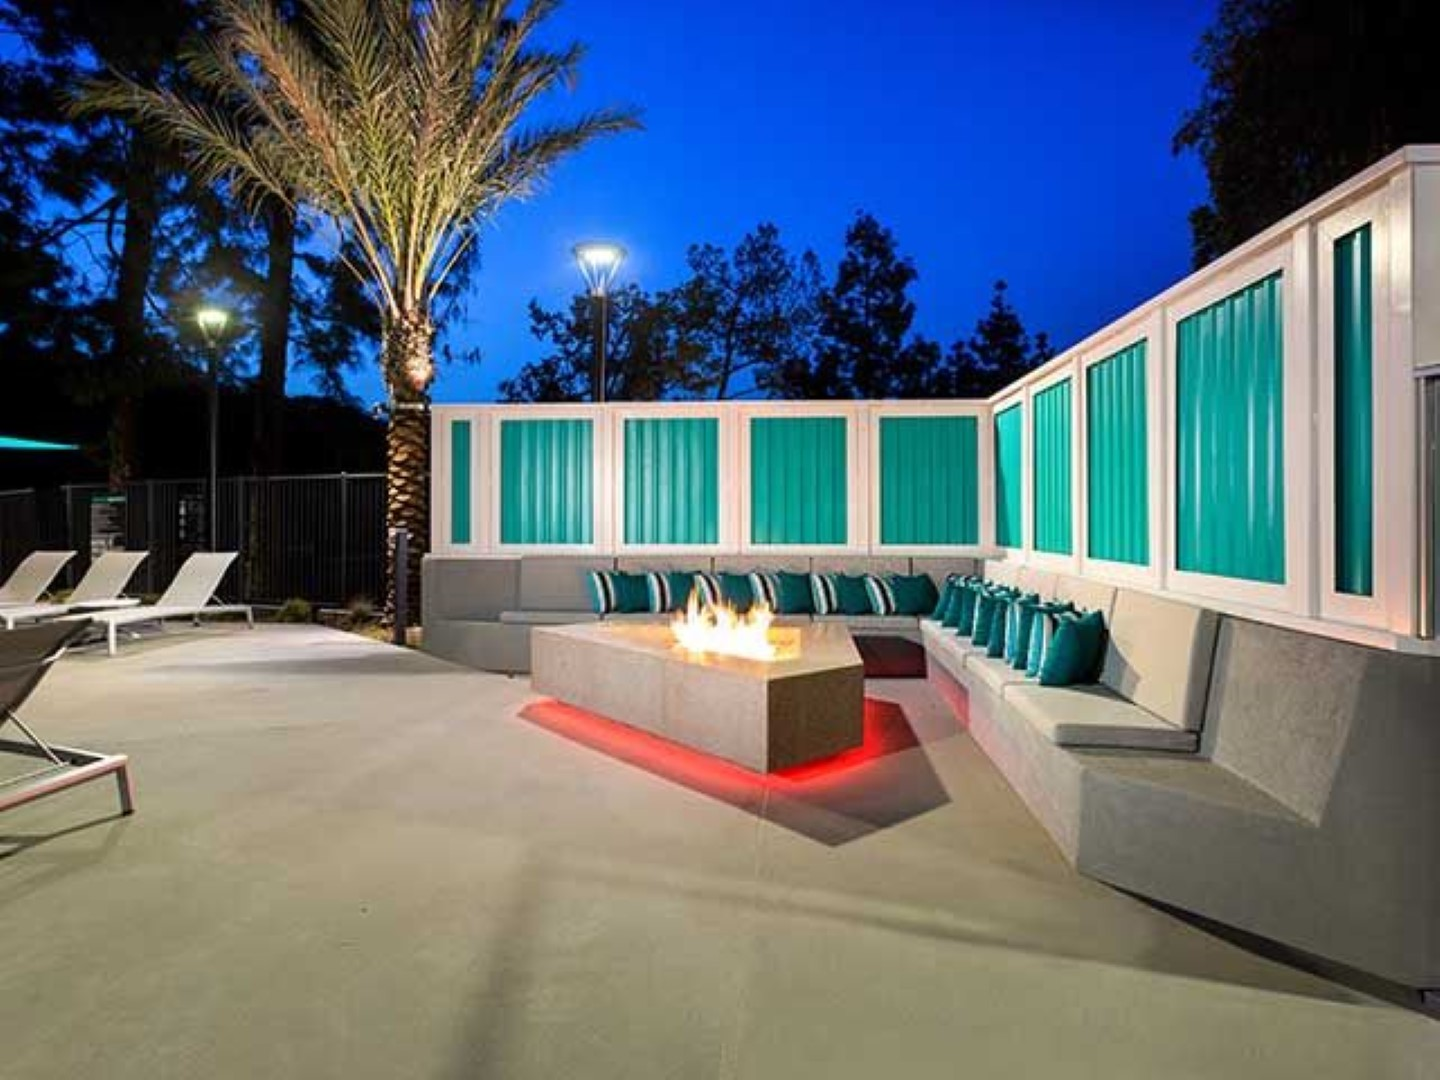 Fire pit at Ava Toluca Hills Apartments, Toluca Lake, Los Angeles